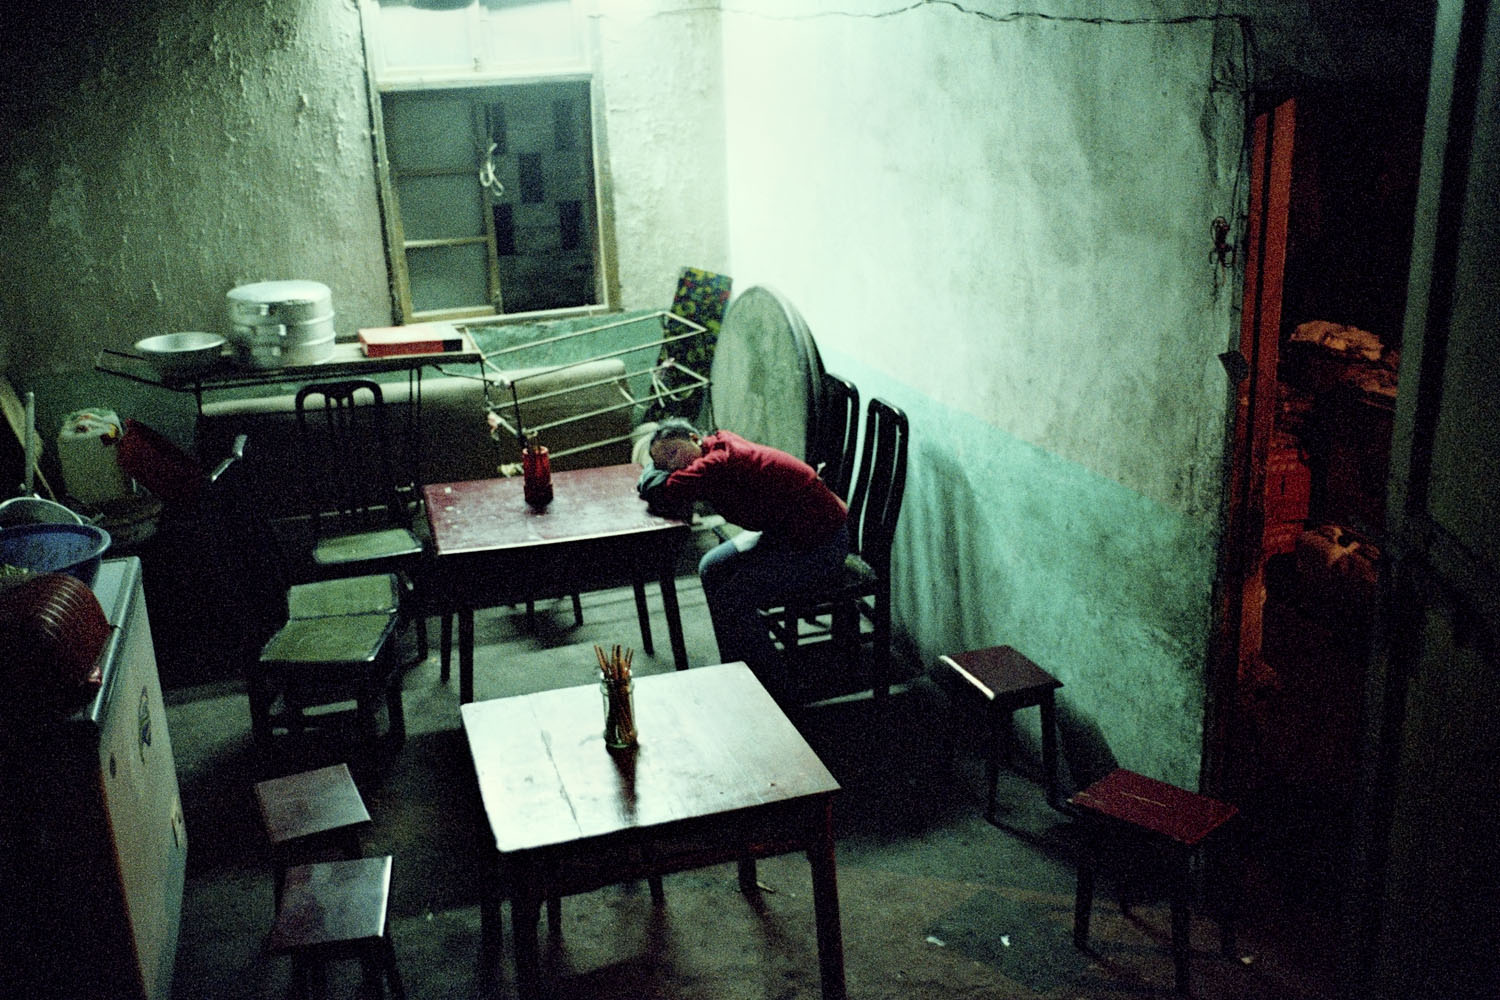 Last inhabitants. A woman sits alone at a table with many chairs surrounding it. As the last inhabitants move out, business activity of these old towns ground to an inevitable halt. Badong, China. 2002.